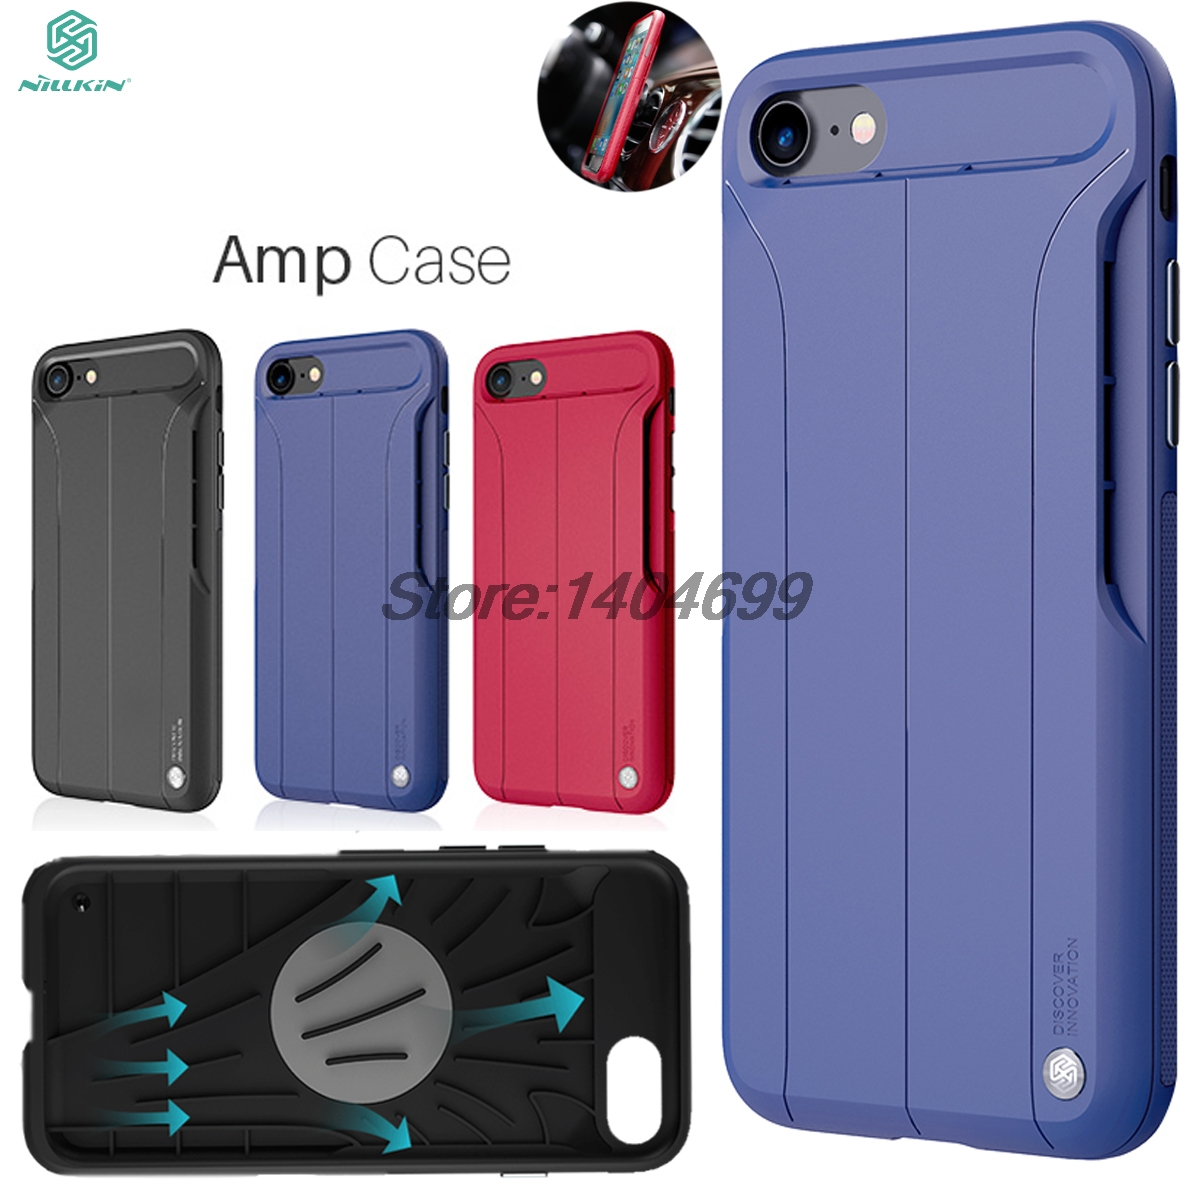 sFor iPhone 7 Case Nillkin Creative Series Car Magnetic Suction Embedded Iron AMP Case For iPhone 7 Back Cover